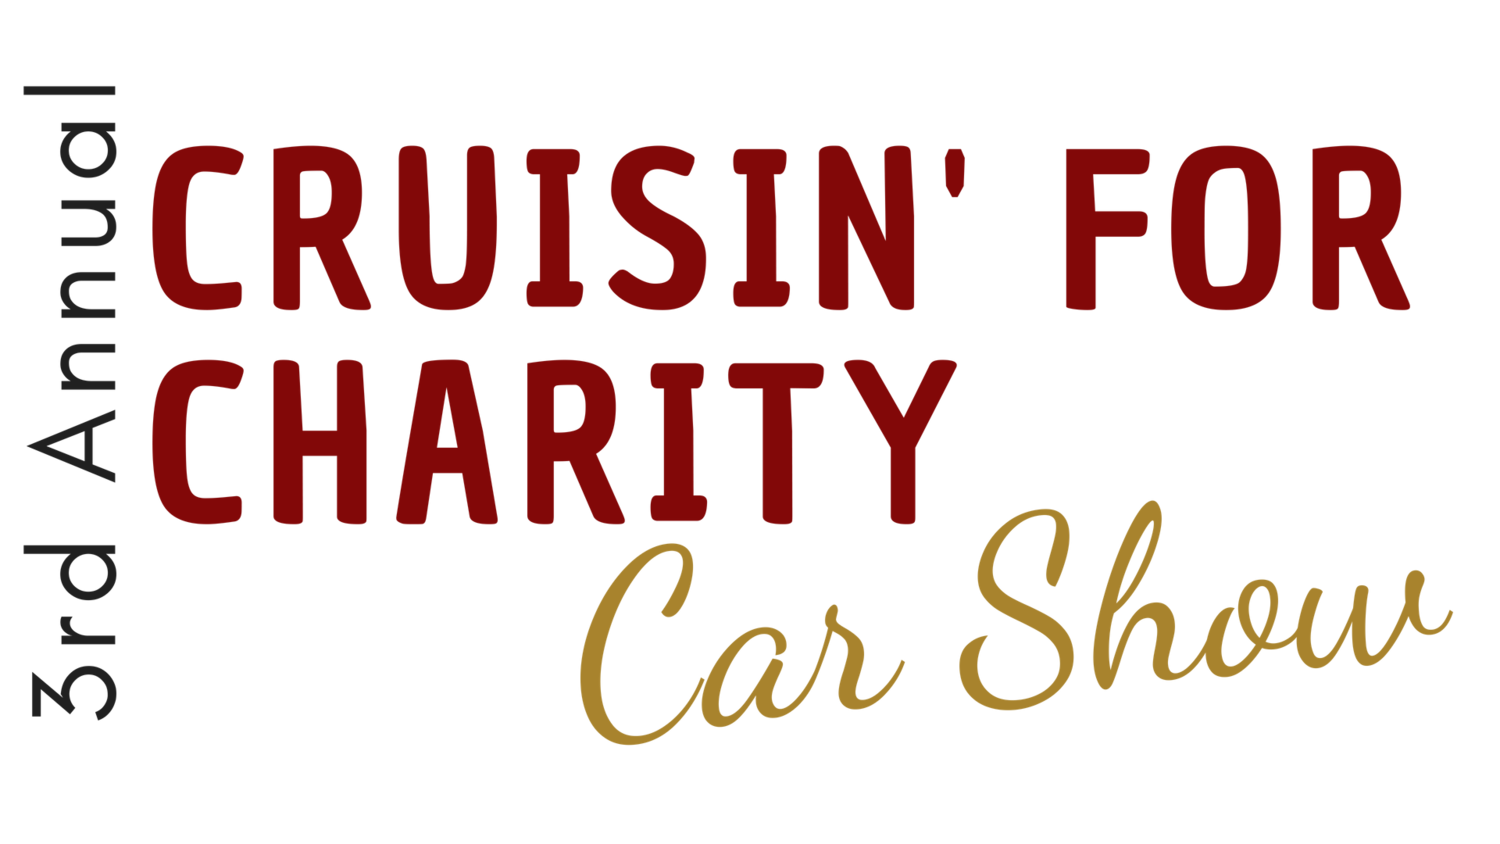 Cruisin' for Charity